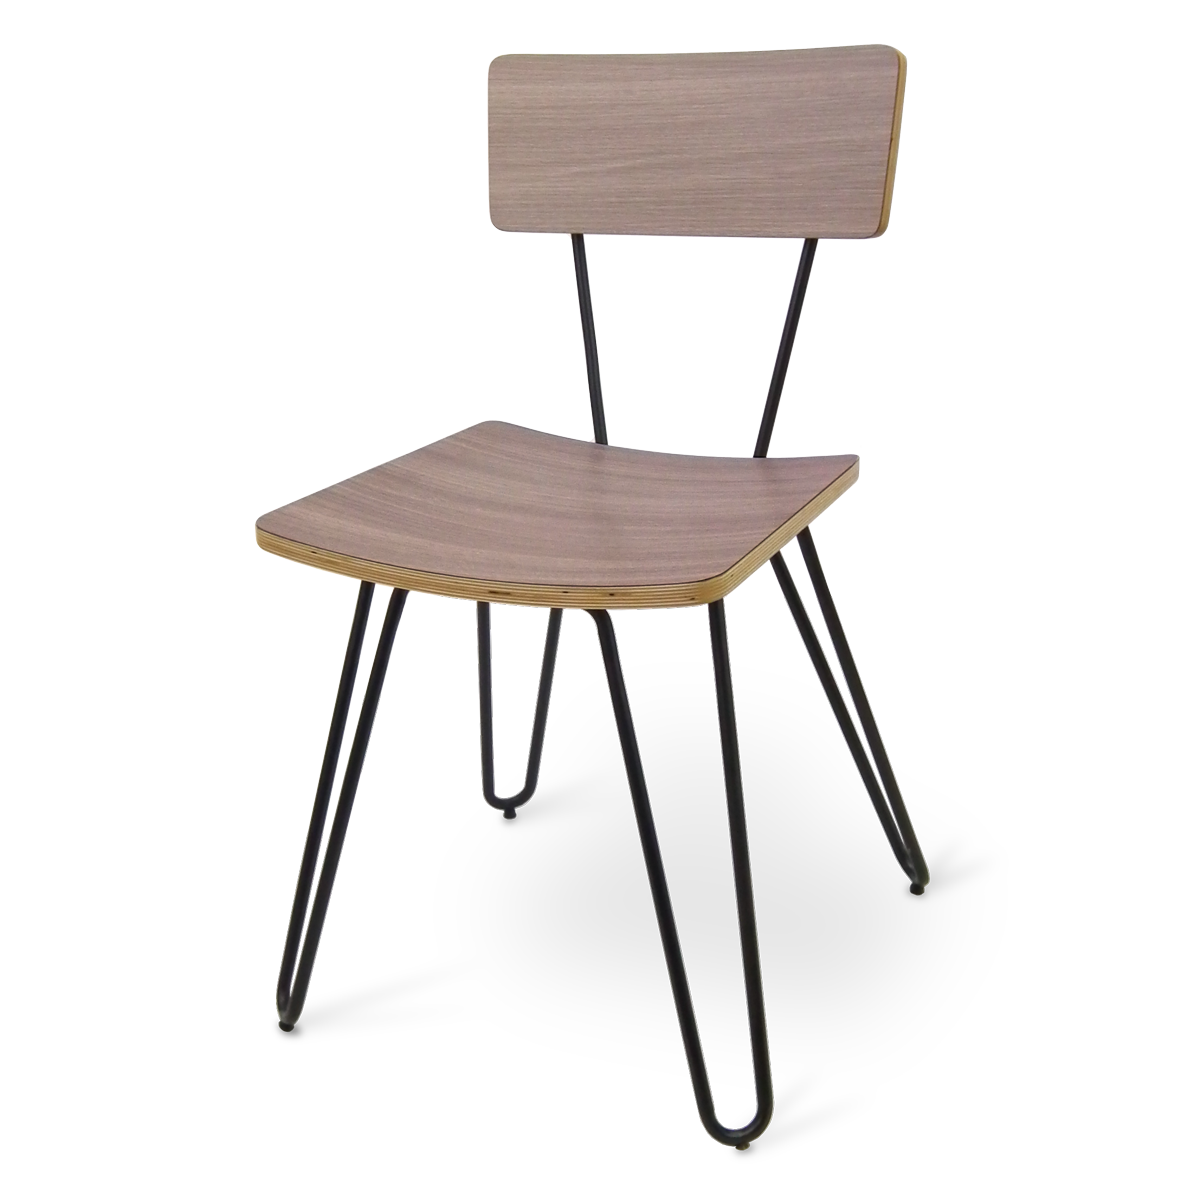 Molded Laminate on Hairpin Legs, Chair